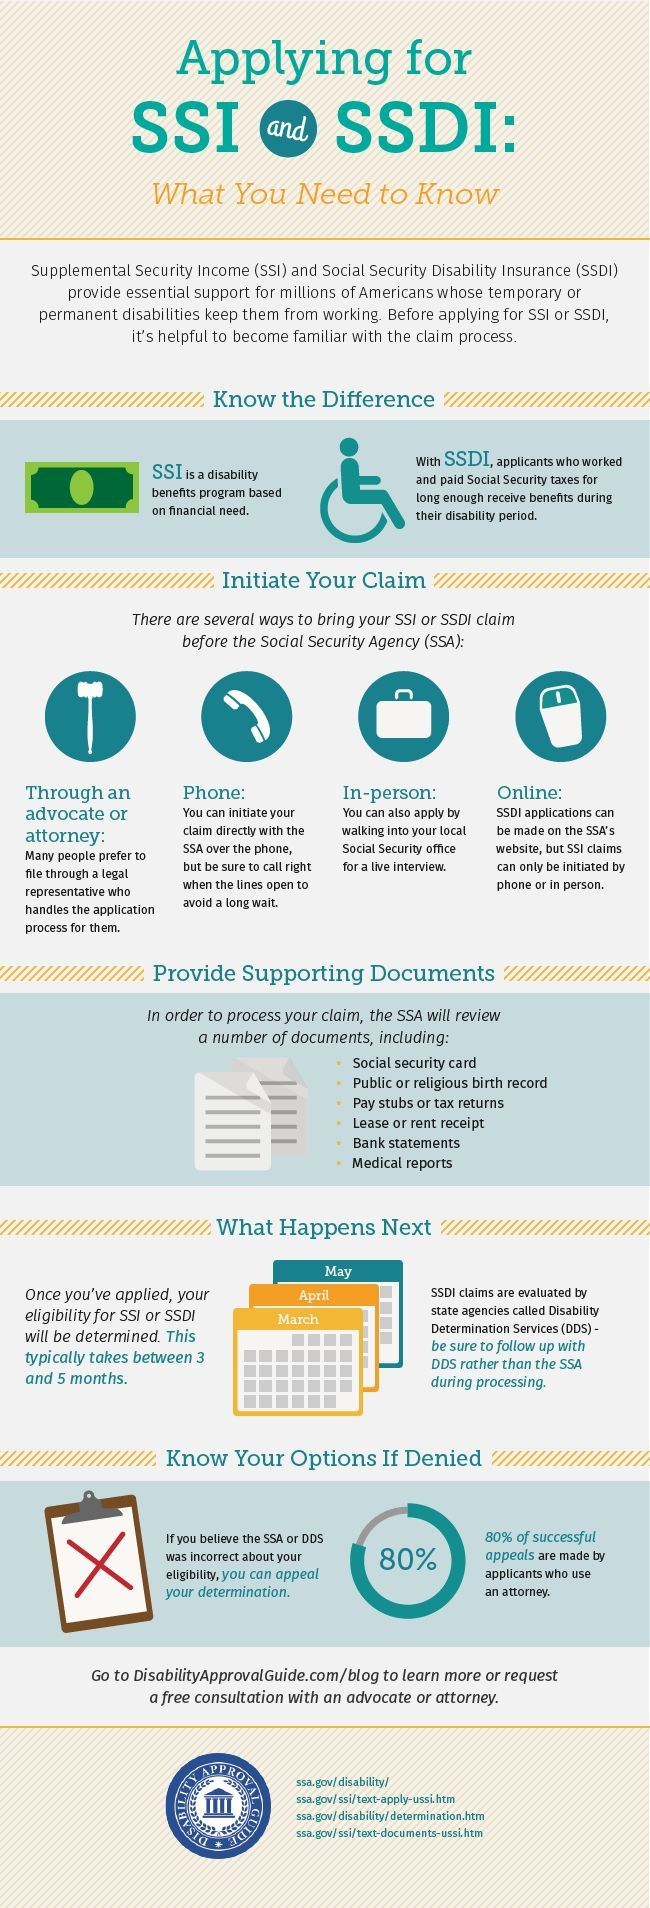 Tips To Help You Apply For Ssi And Ssdi Disability Benefits Social Security Disability Disability Disability Help